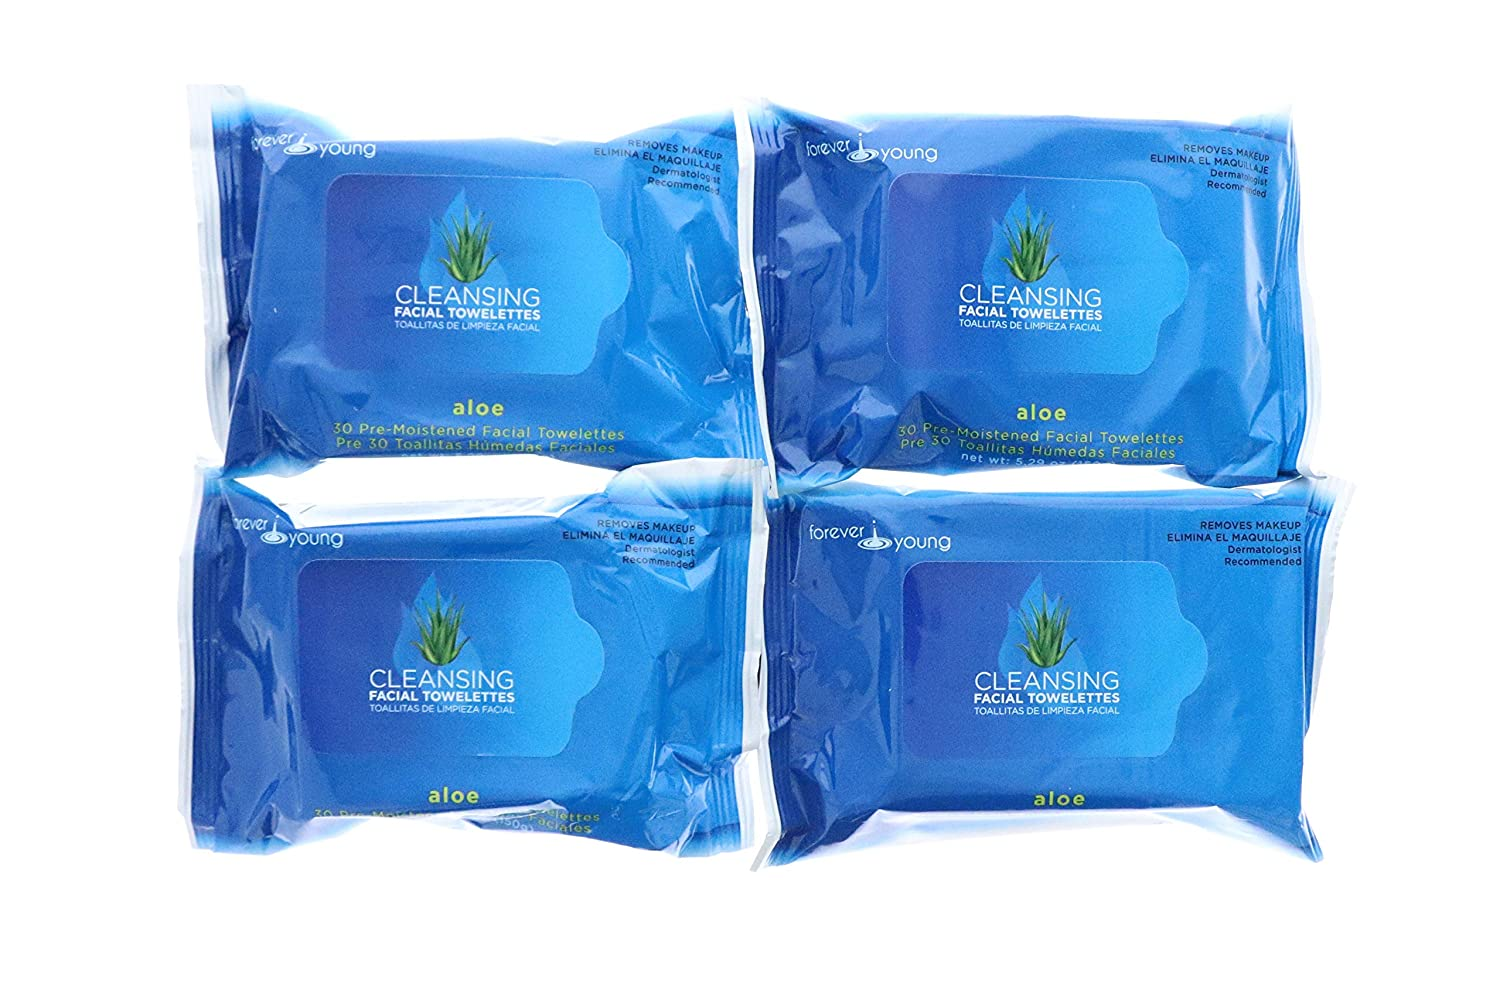 Amazon.com: SpaLife Cleansing Wipes Facial Towelettes - 30 Count - 4 Pack Variety - Cucumber, Aloe, Rose & Lavender (Aloe): Beauty